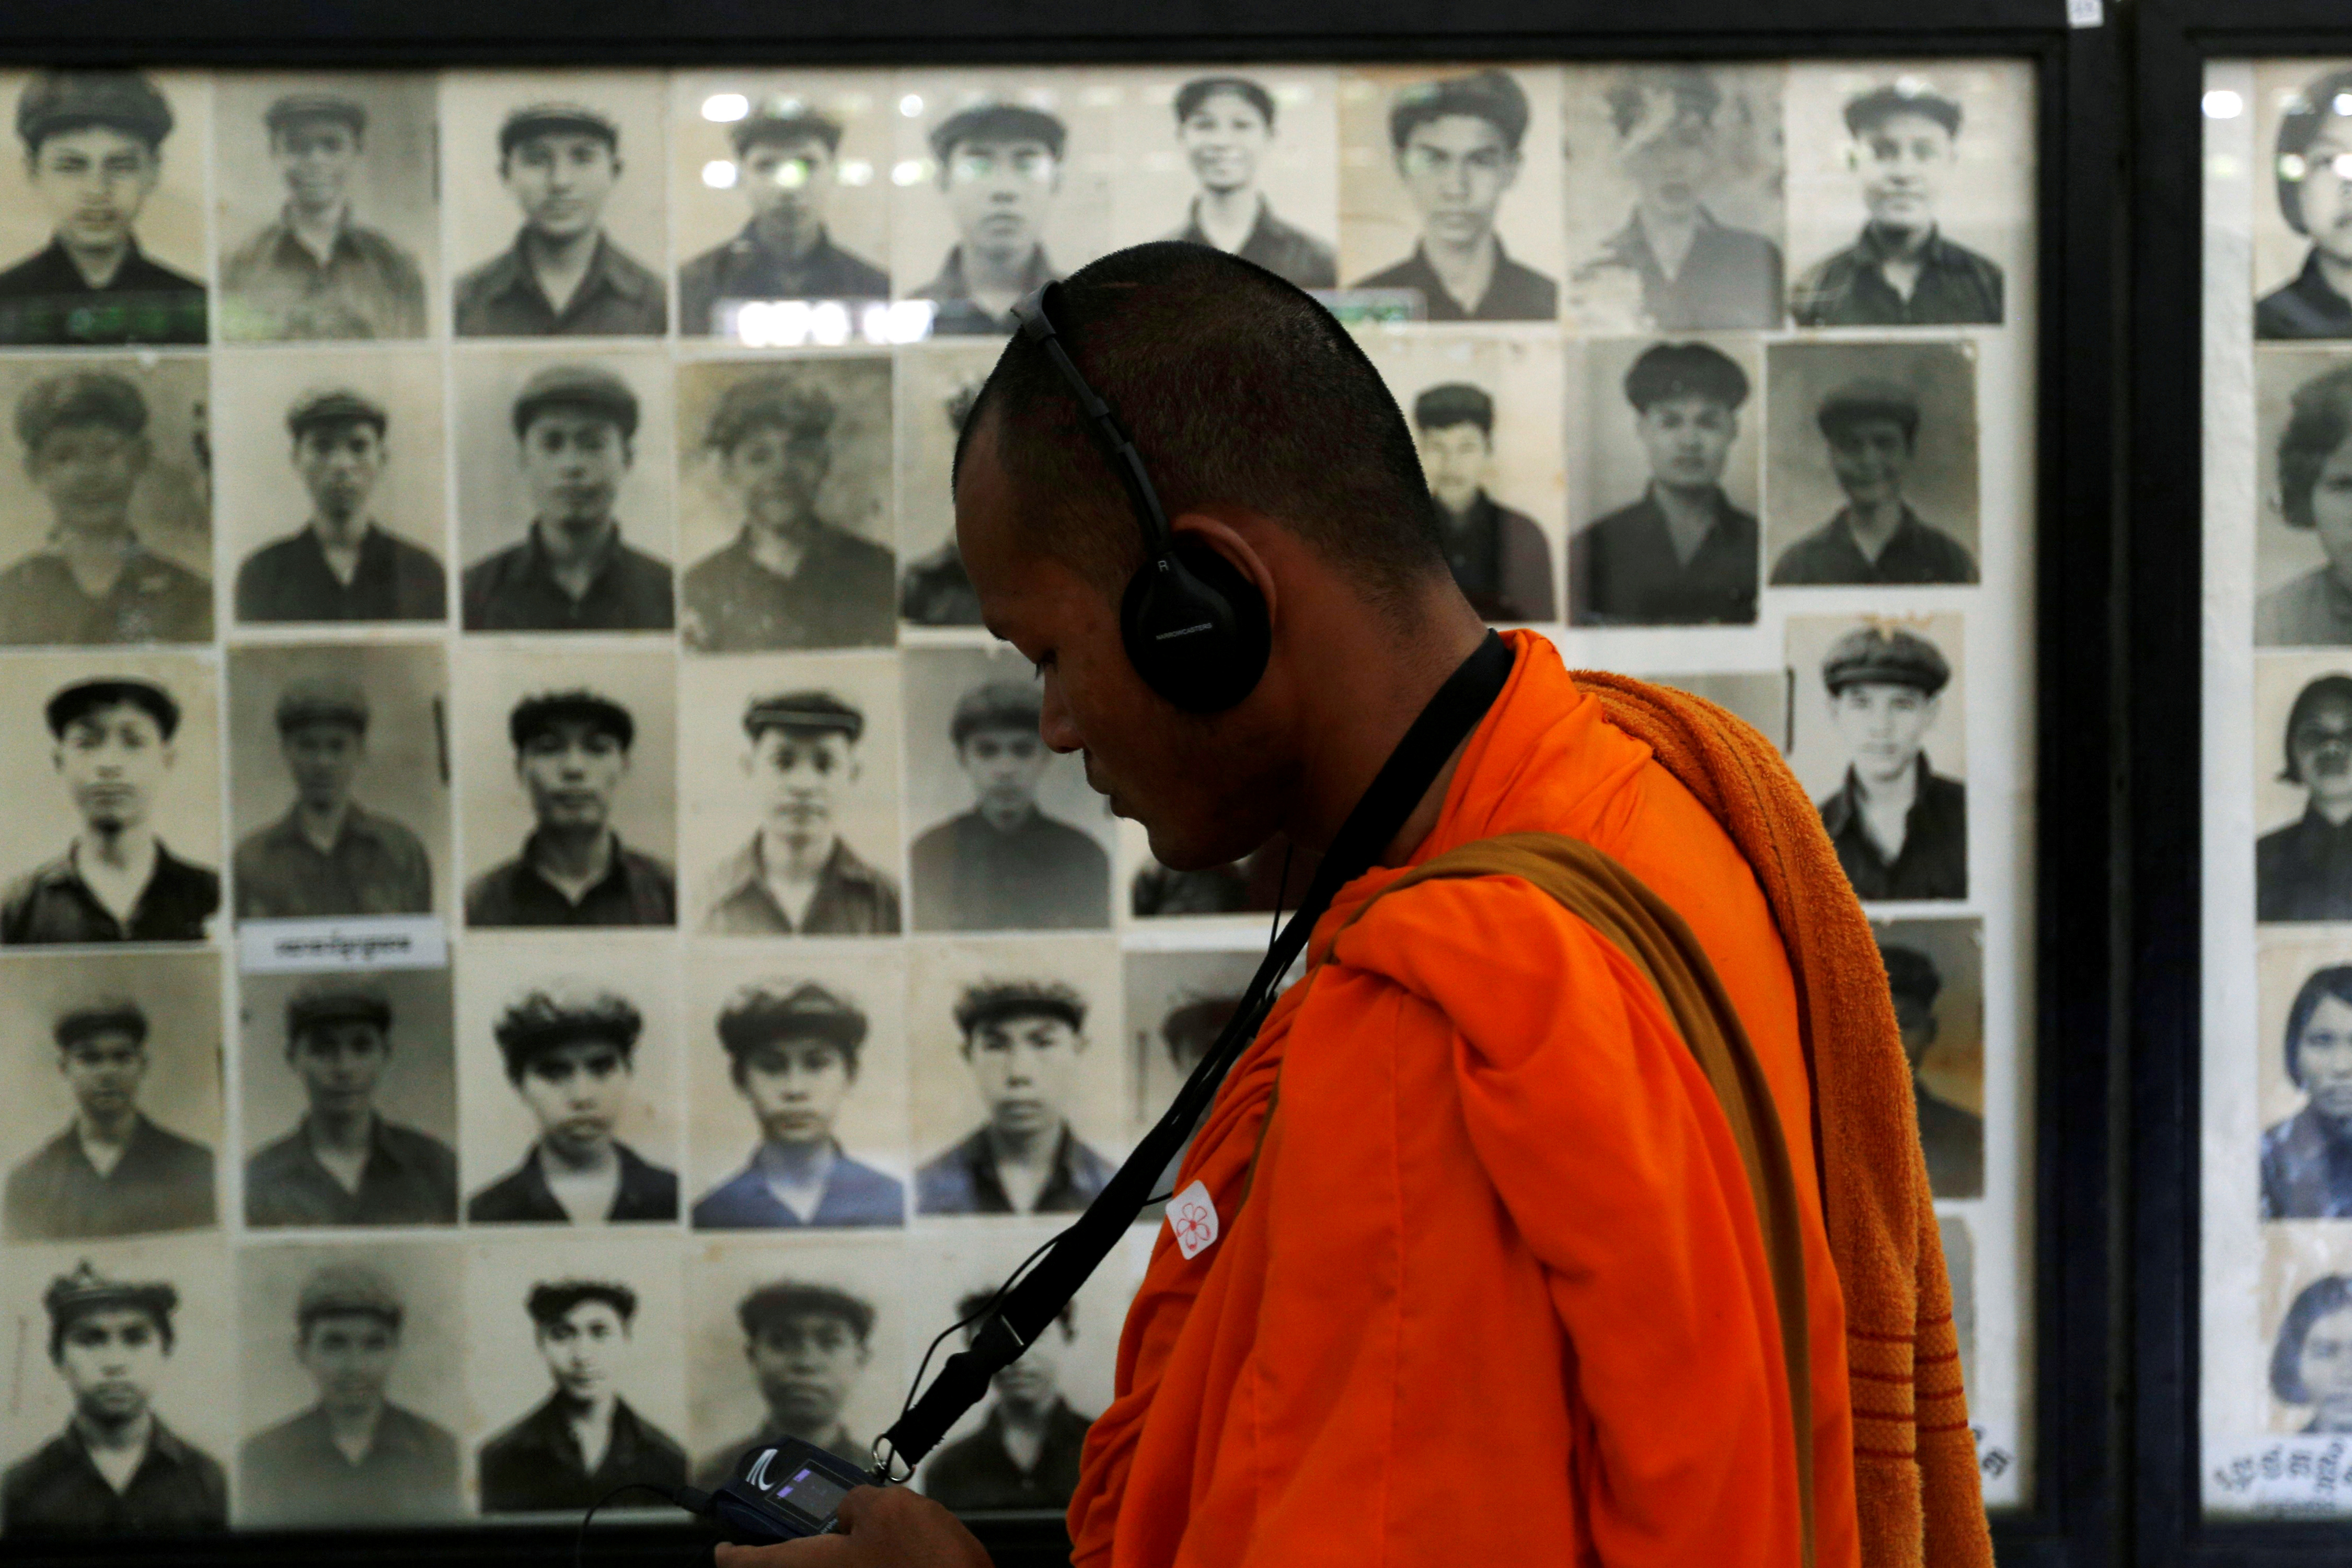 A Buddhist monk looks at pictures of victims of the Khmer Rouge regime at Tuol Sleng Genocide Museum in Phnom Penh, Cambodia June 1, 2016. REUTERS/Samrang Pring